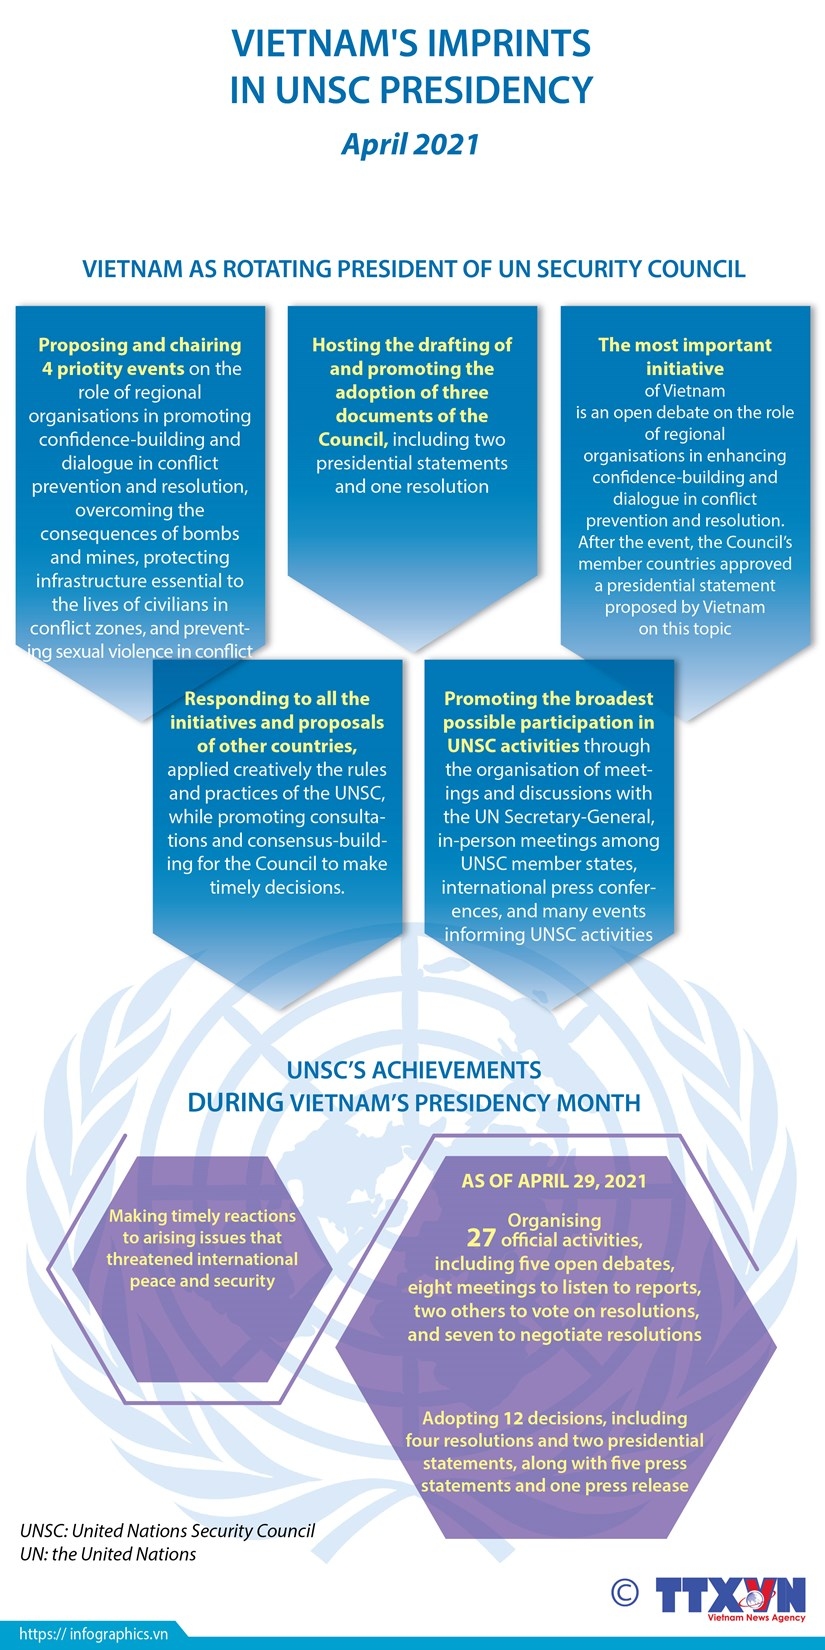 Vietnam's imprints in UNSC presidency month hinh anh 1